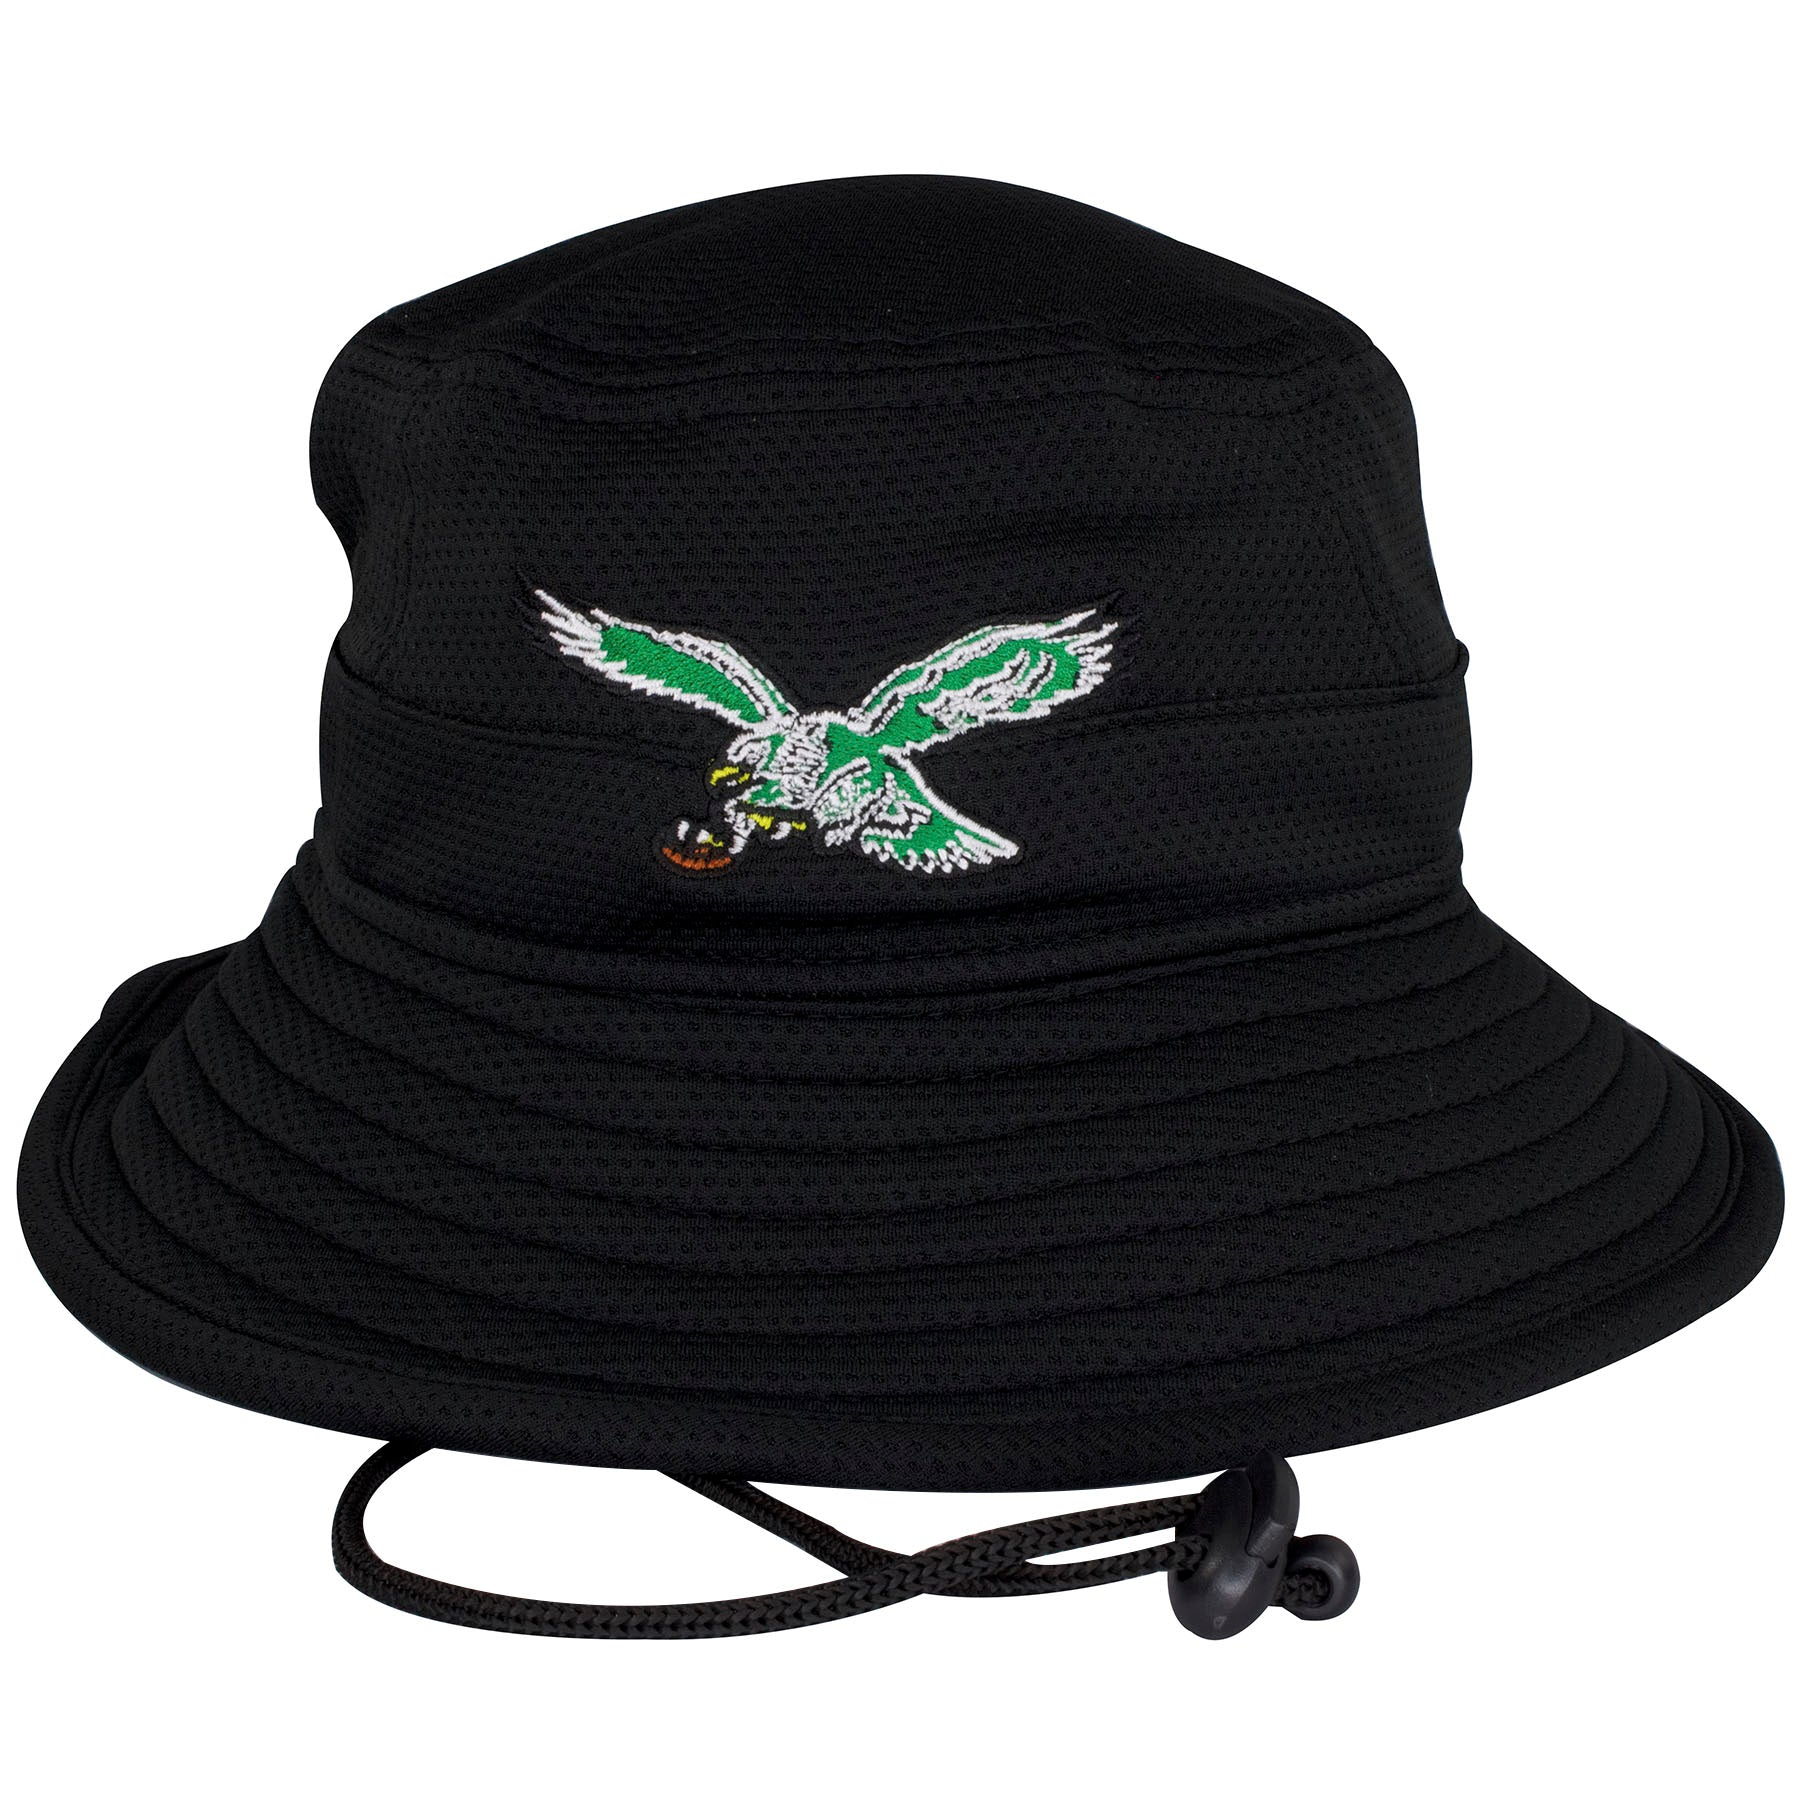 32274aa63a0 ... Bucket Hat.  29.99. This Philadelphia Eagles hat shows a vintage  Philadelphia Eagles bird logo embroidered on the front.